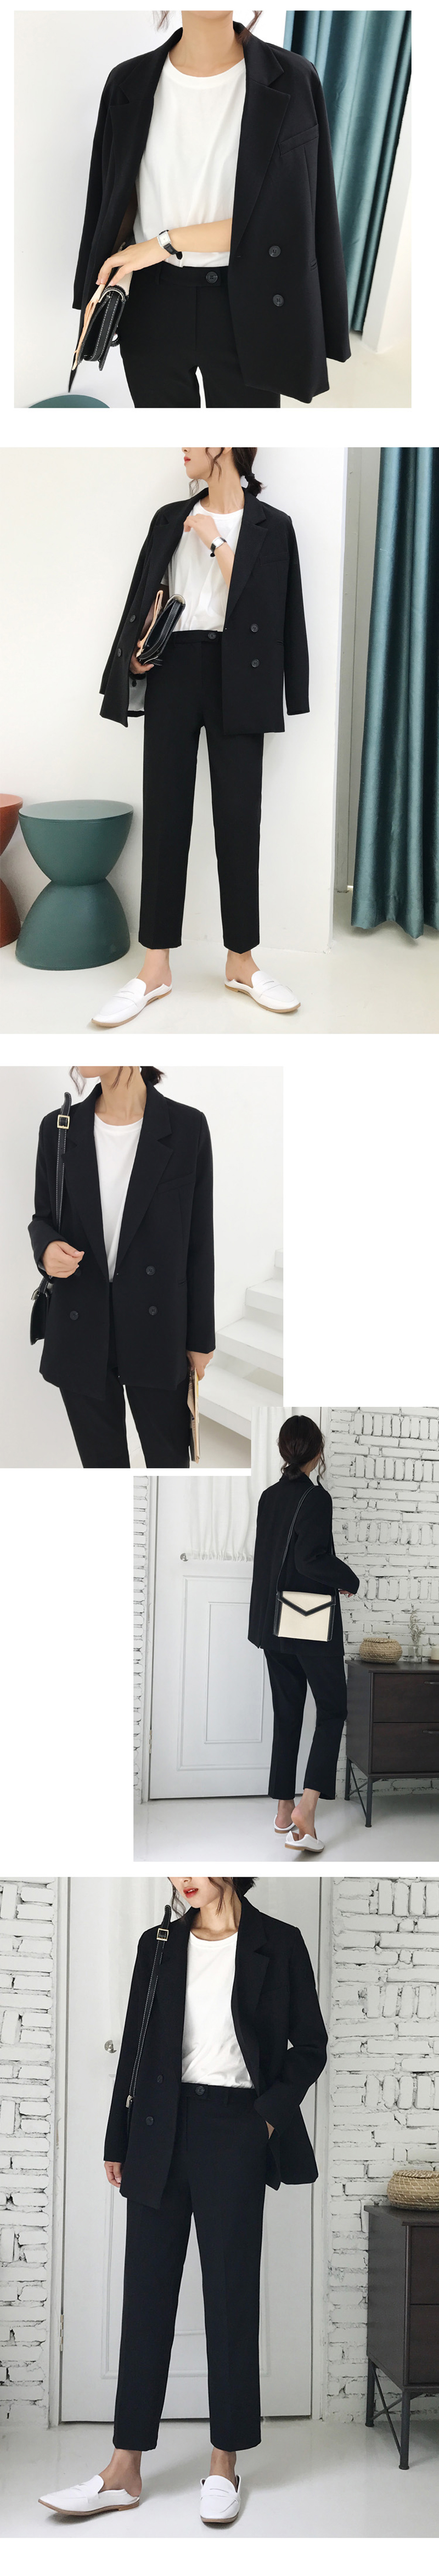 Vintage Double Breasted Women Pant Suit Light Green Notched Blazer Jacket & High Waist Pant Spring Office Wear Women Suits 21